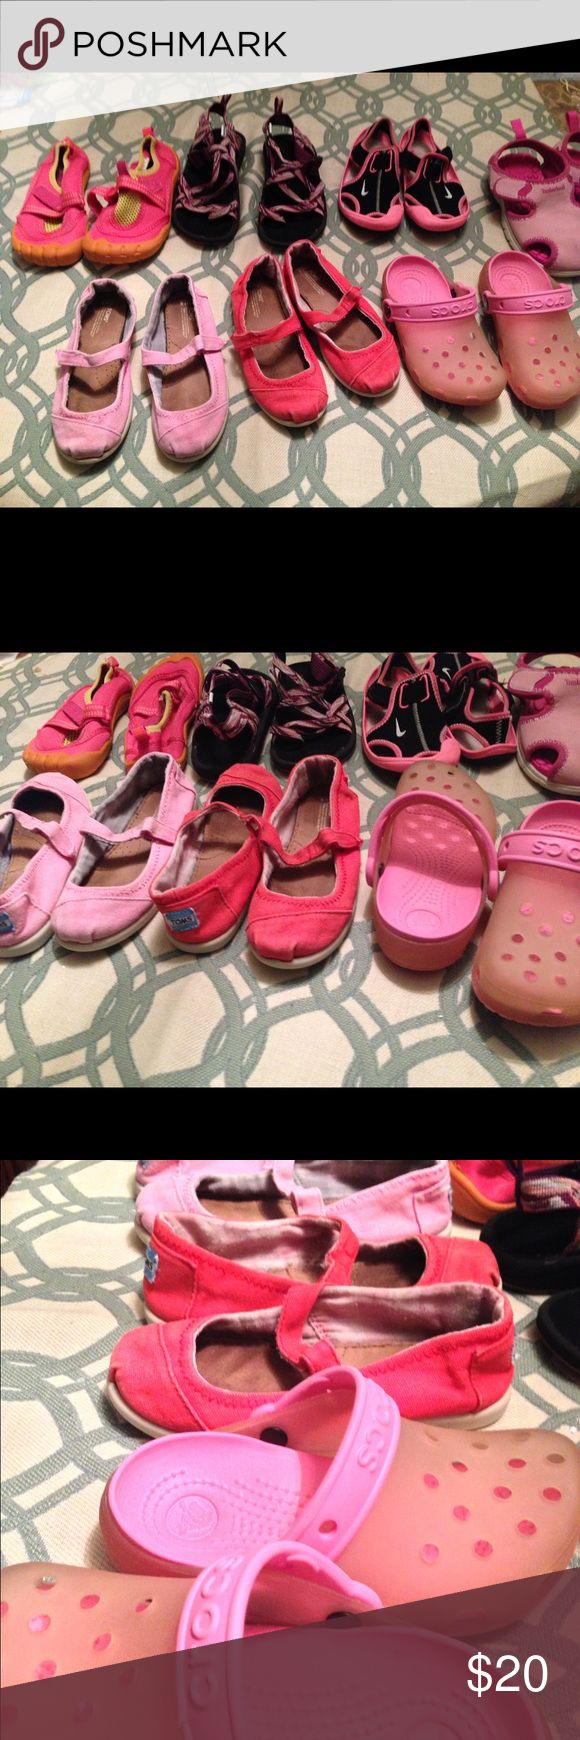 Lot of toddler shoes Toms pink and red worn sz 10,OP brand pink water shoes sz 10/11 , Nike sandals sz 10-11, timberland sandals sz 11, crocs sz 10-11 Various Shoes Sandals